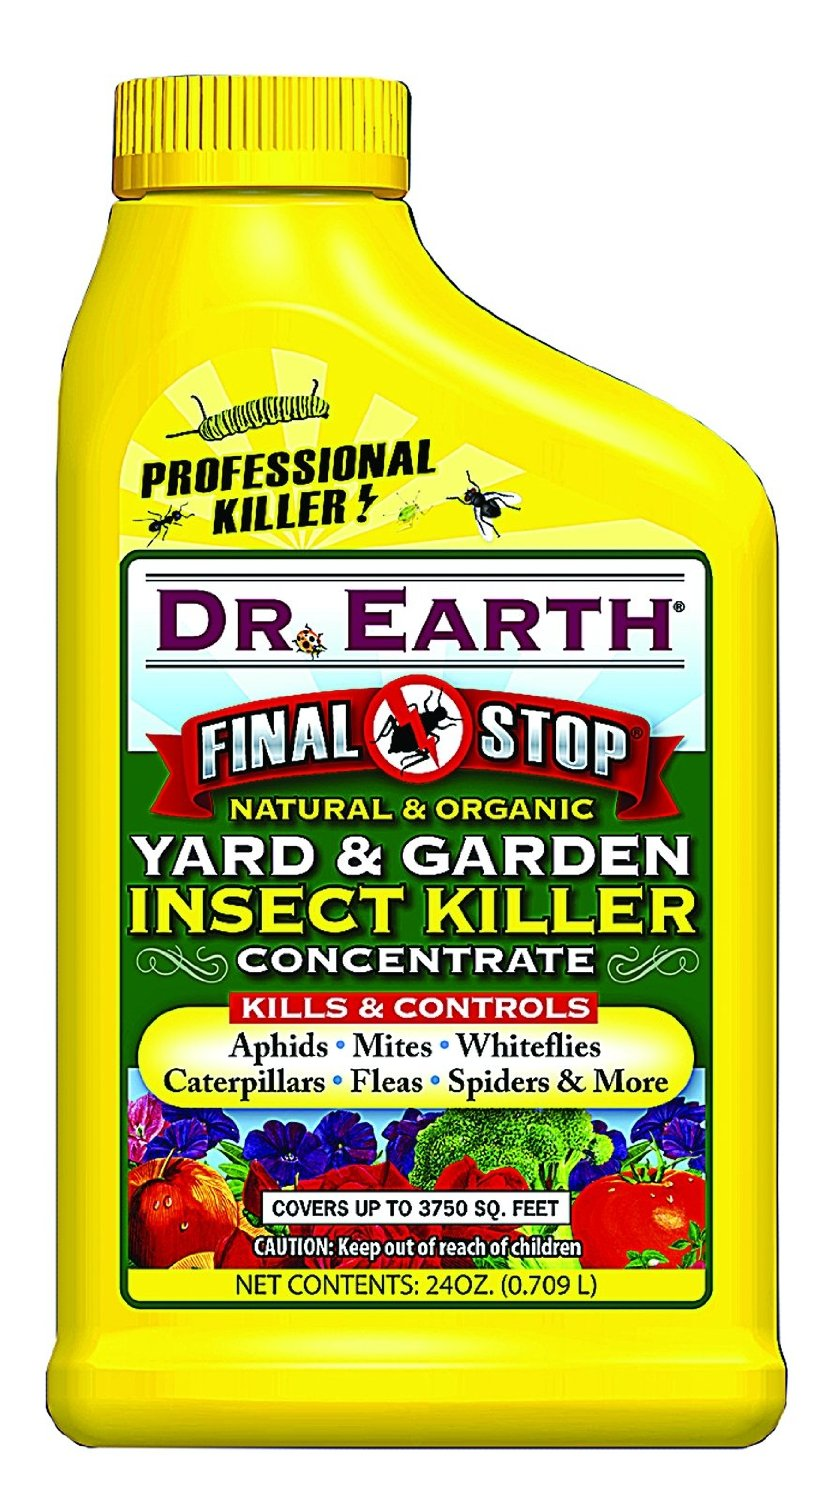 Dr. Earth Yard & Garden Insect Concentrate Killer, 24 oz